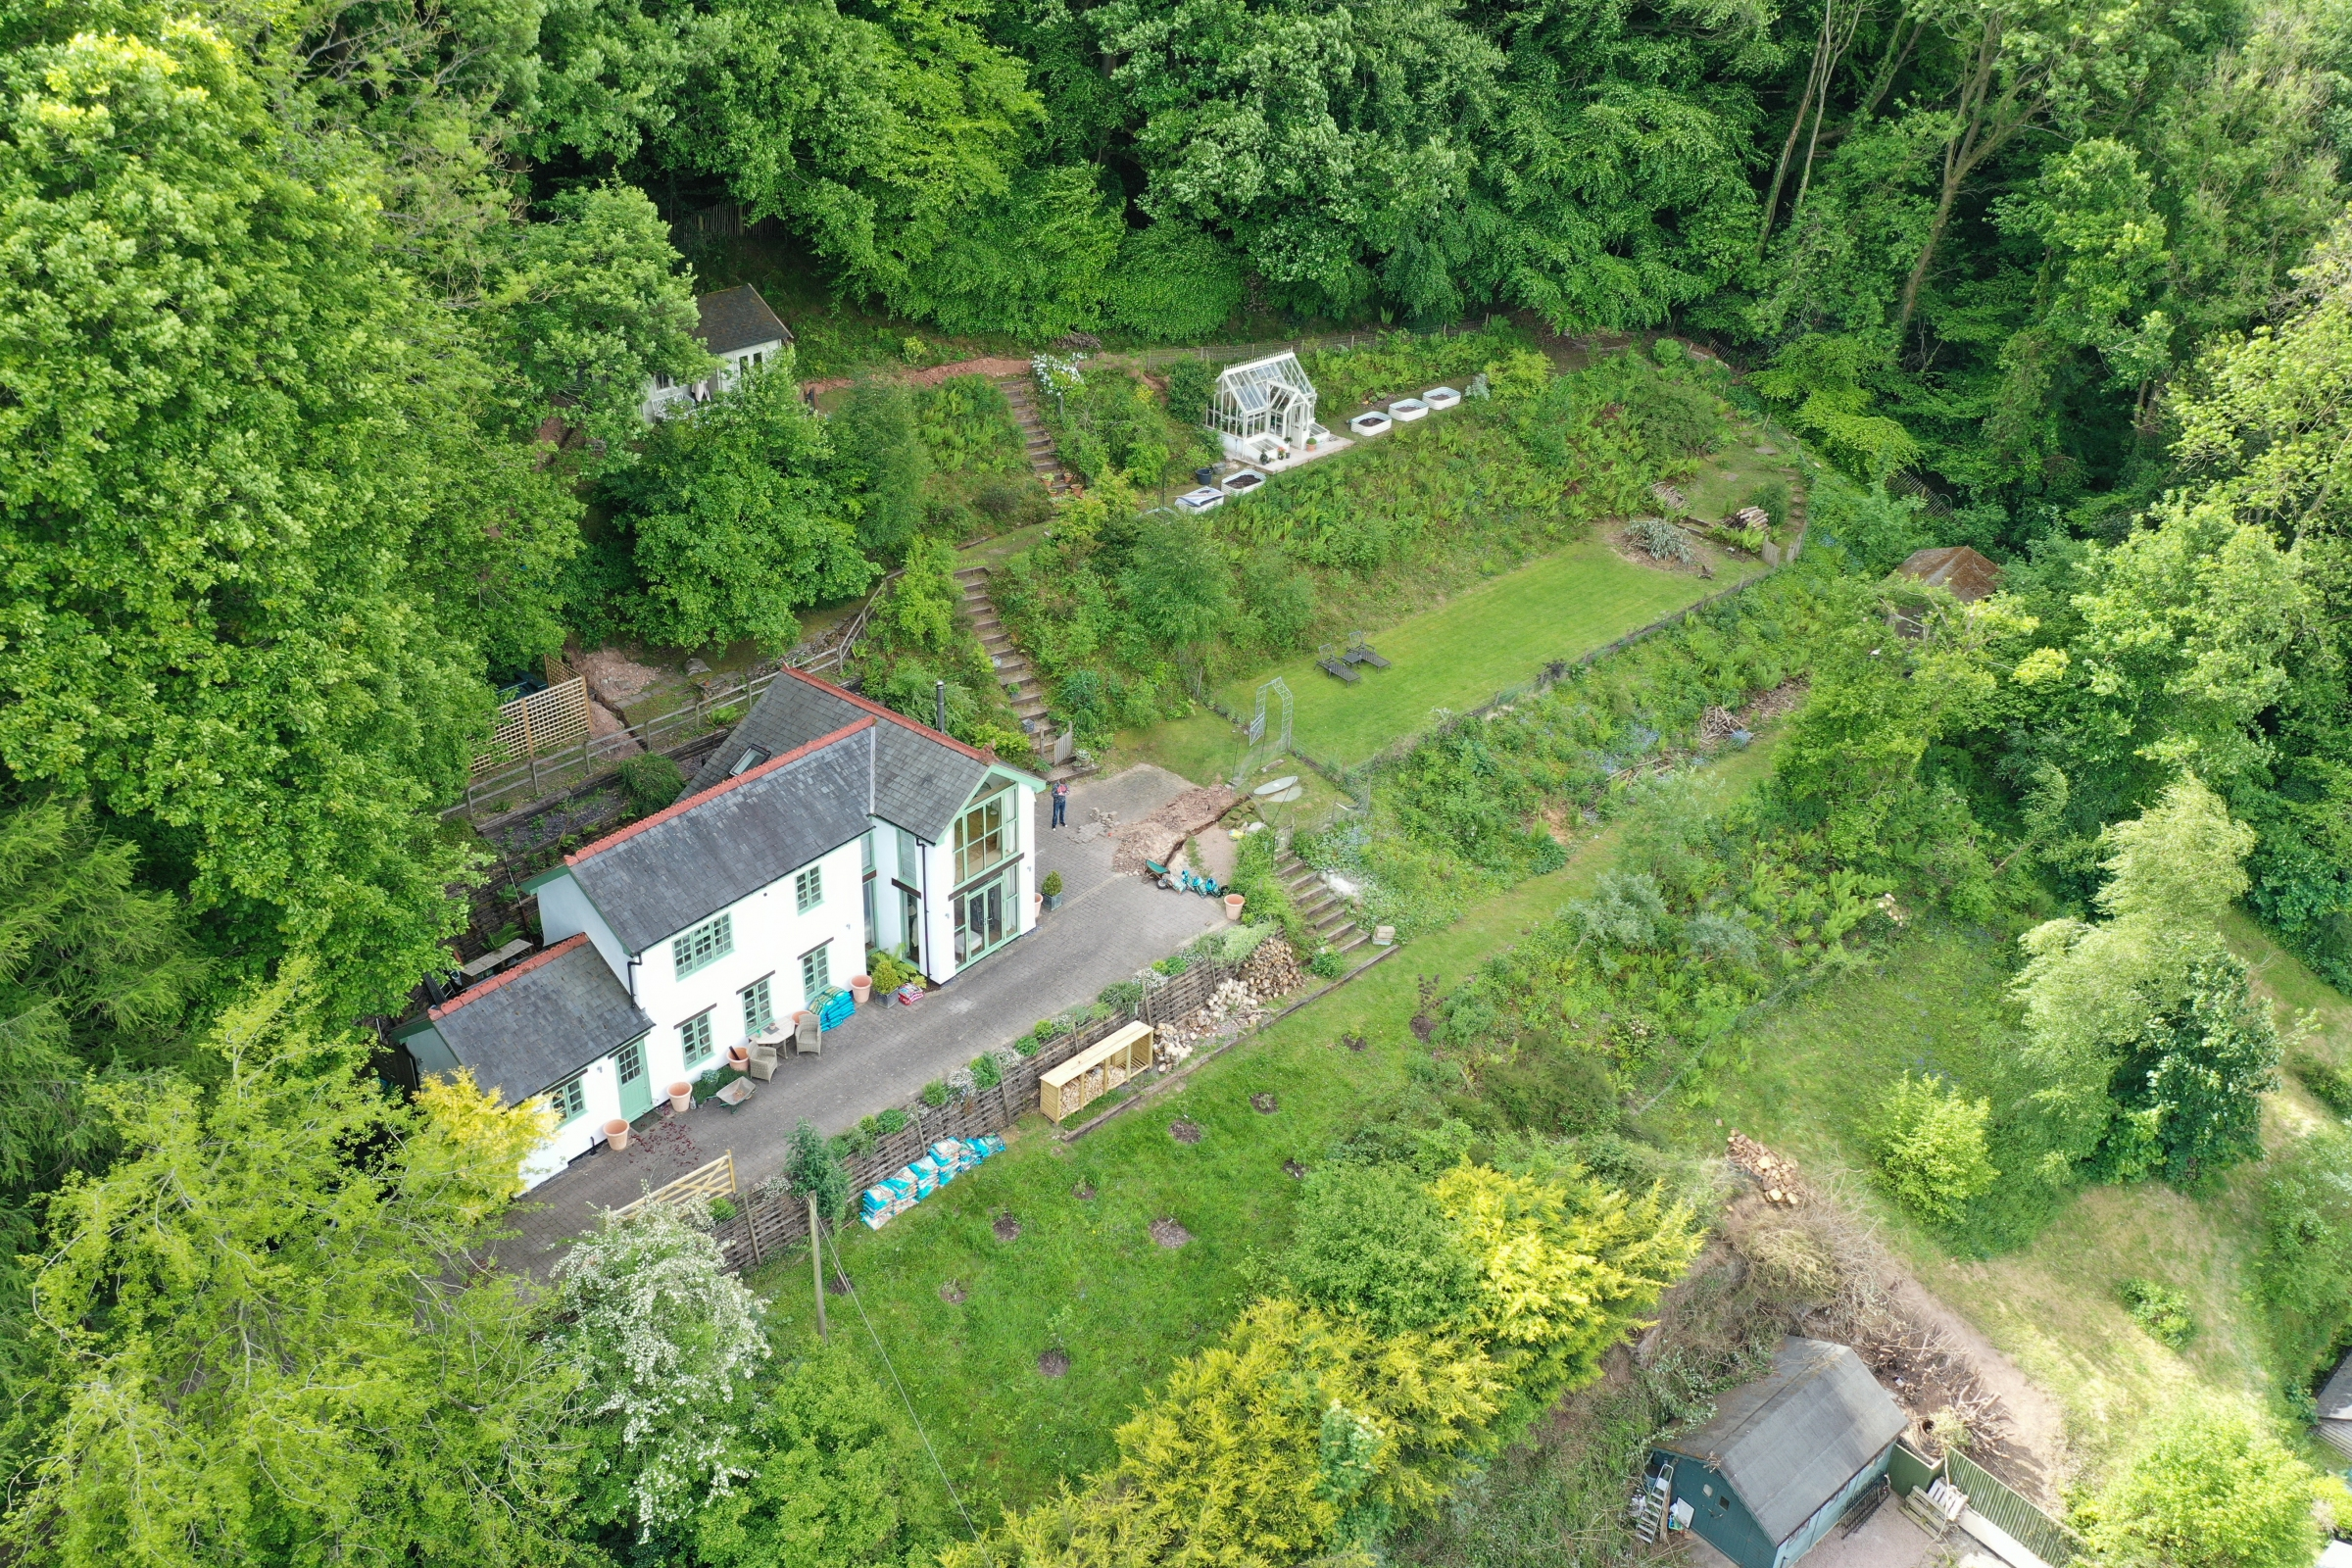 Aerial survey property herefordshire with certified drone pilot Luke Sutton 3 aerial drone inspection survey